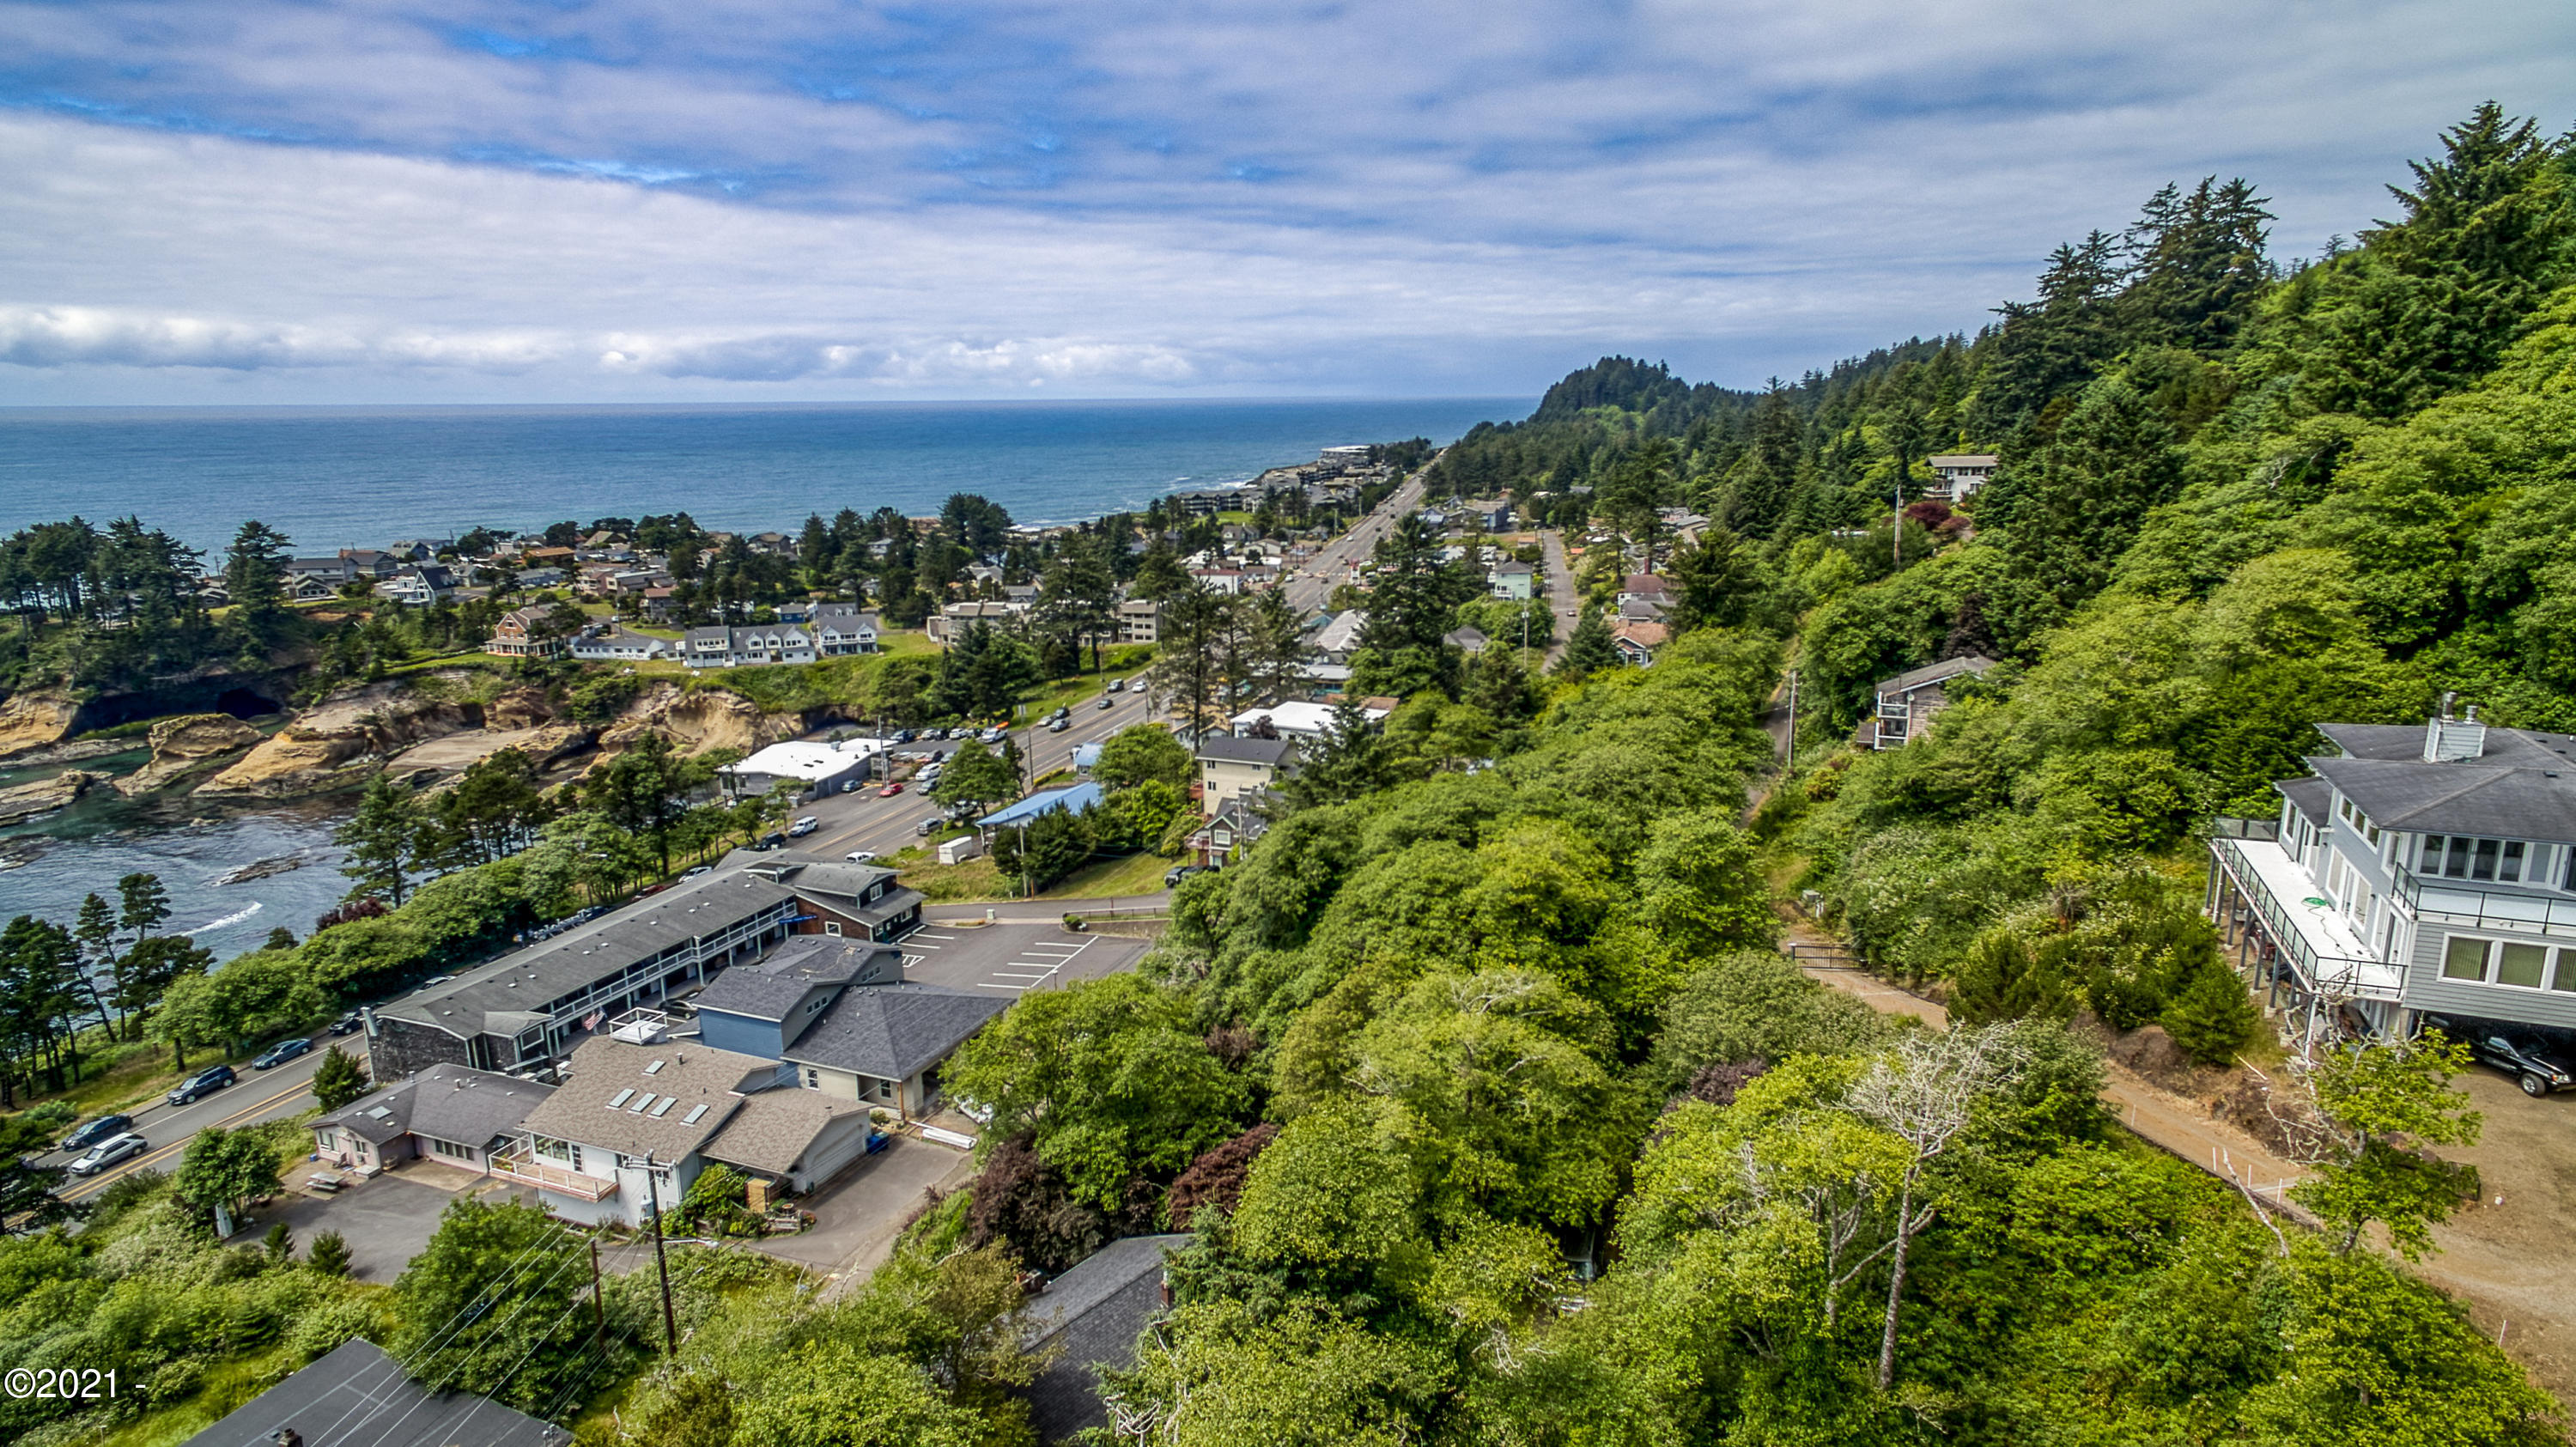 TL 8200 NE Bensell Pl, Depoe Bay, OR 97341 - lot and view